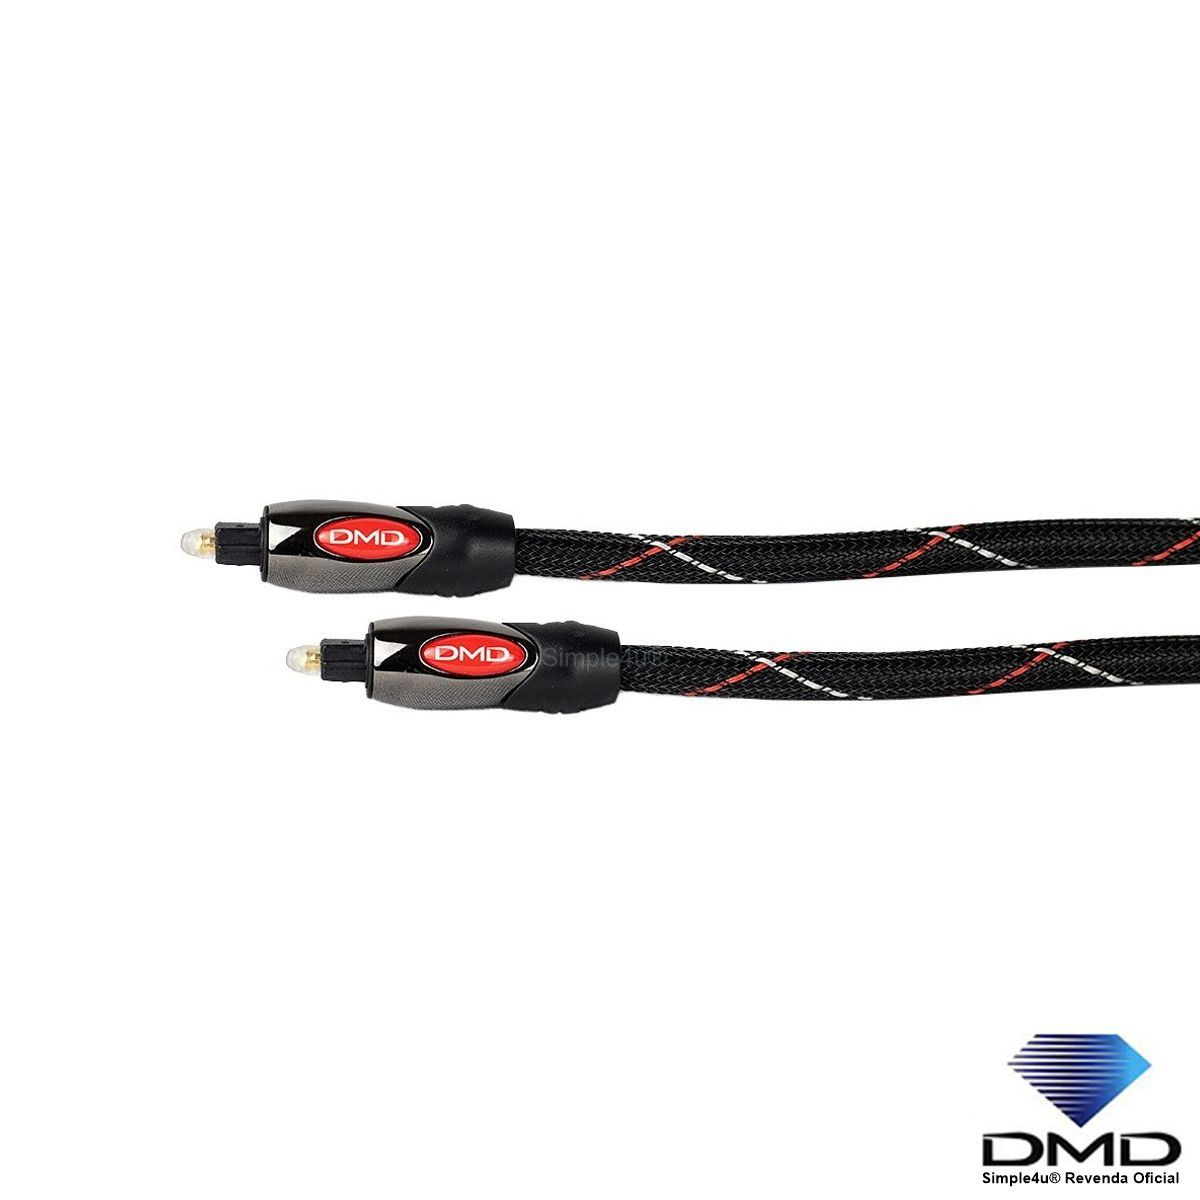 Cabo Fibra Óptica DMD Diamond Cable JX-2003 (1,5M)